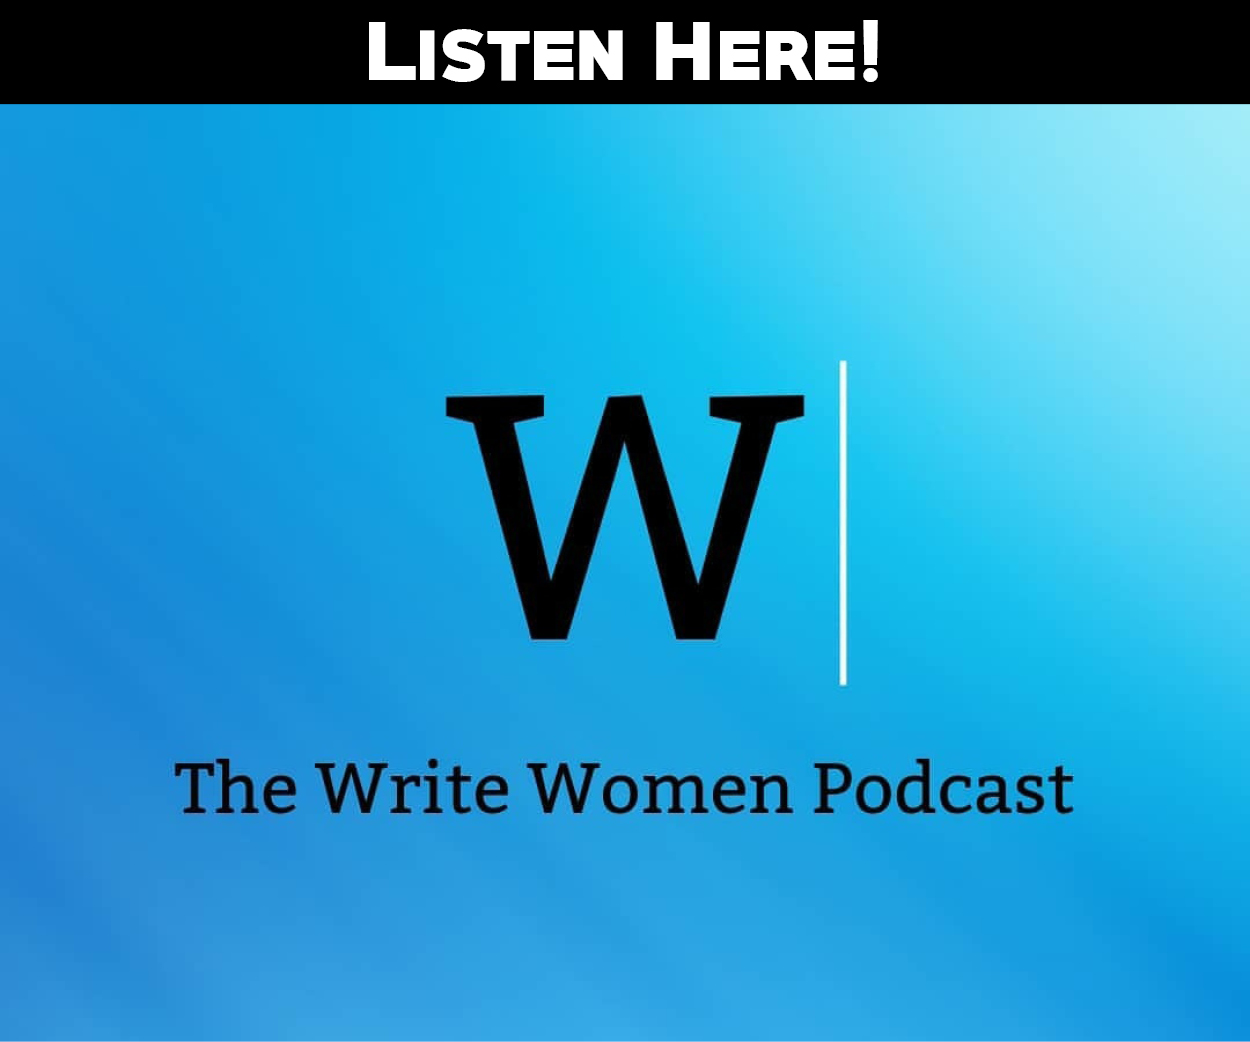 Write-Women-Podcast-For-Gine-On.jpg